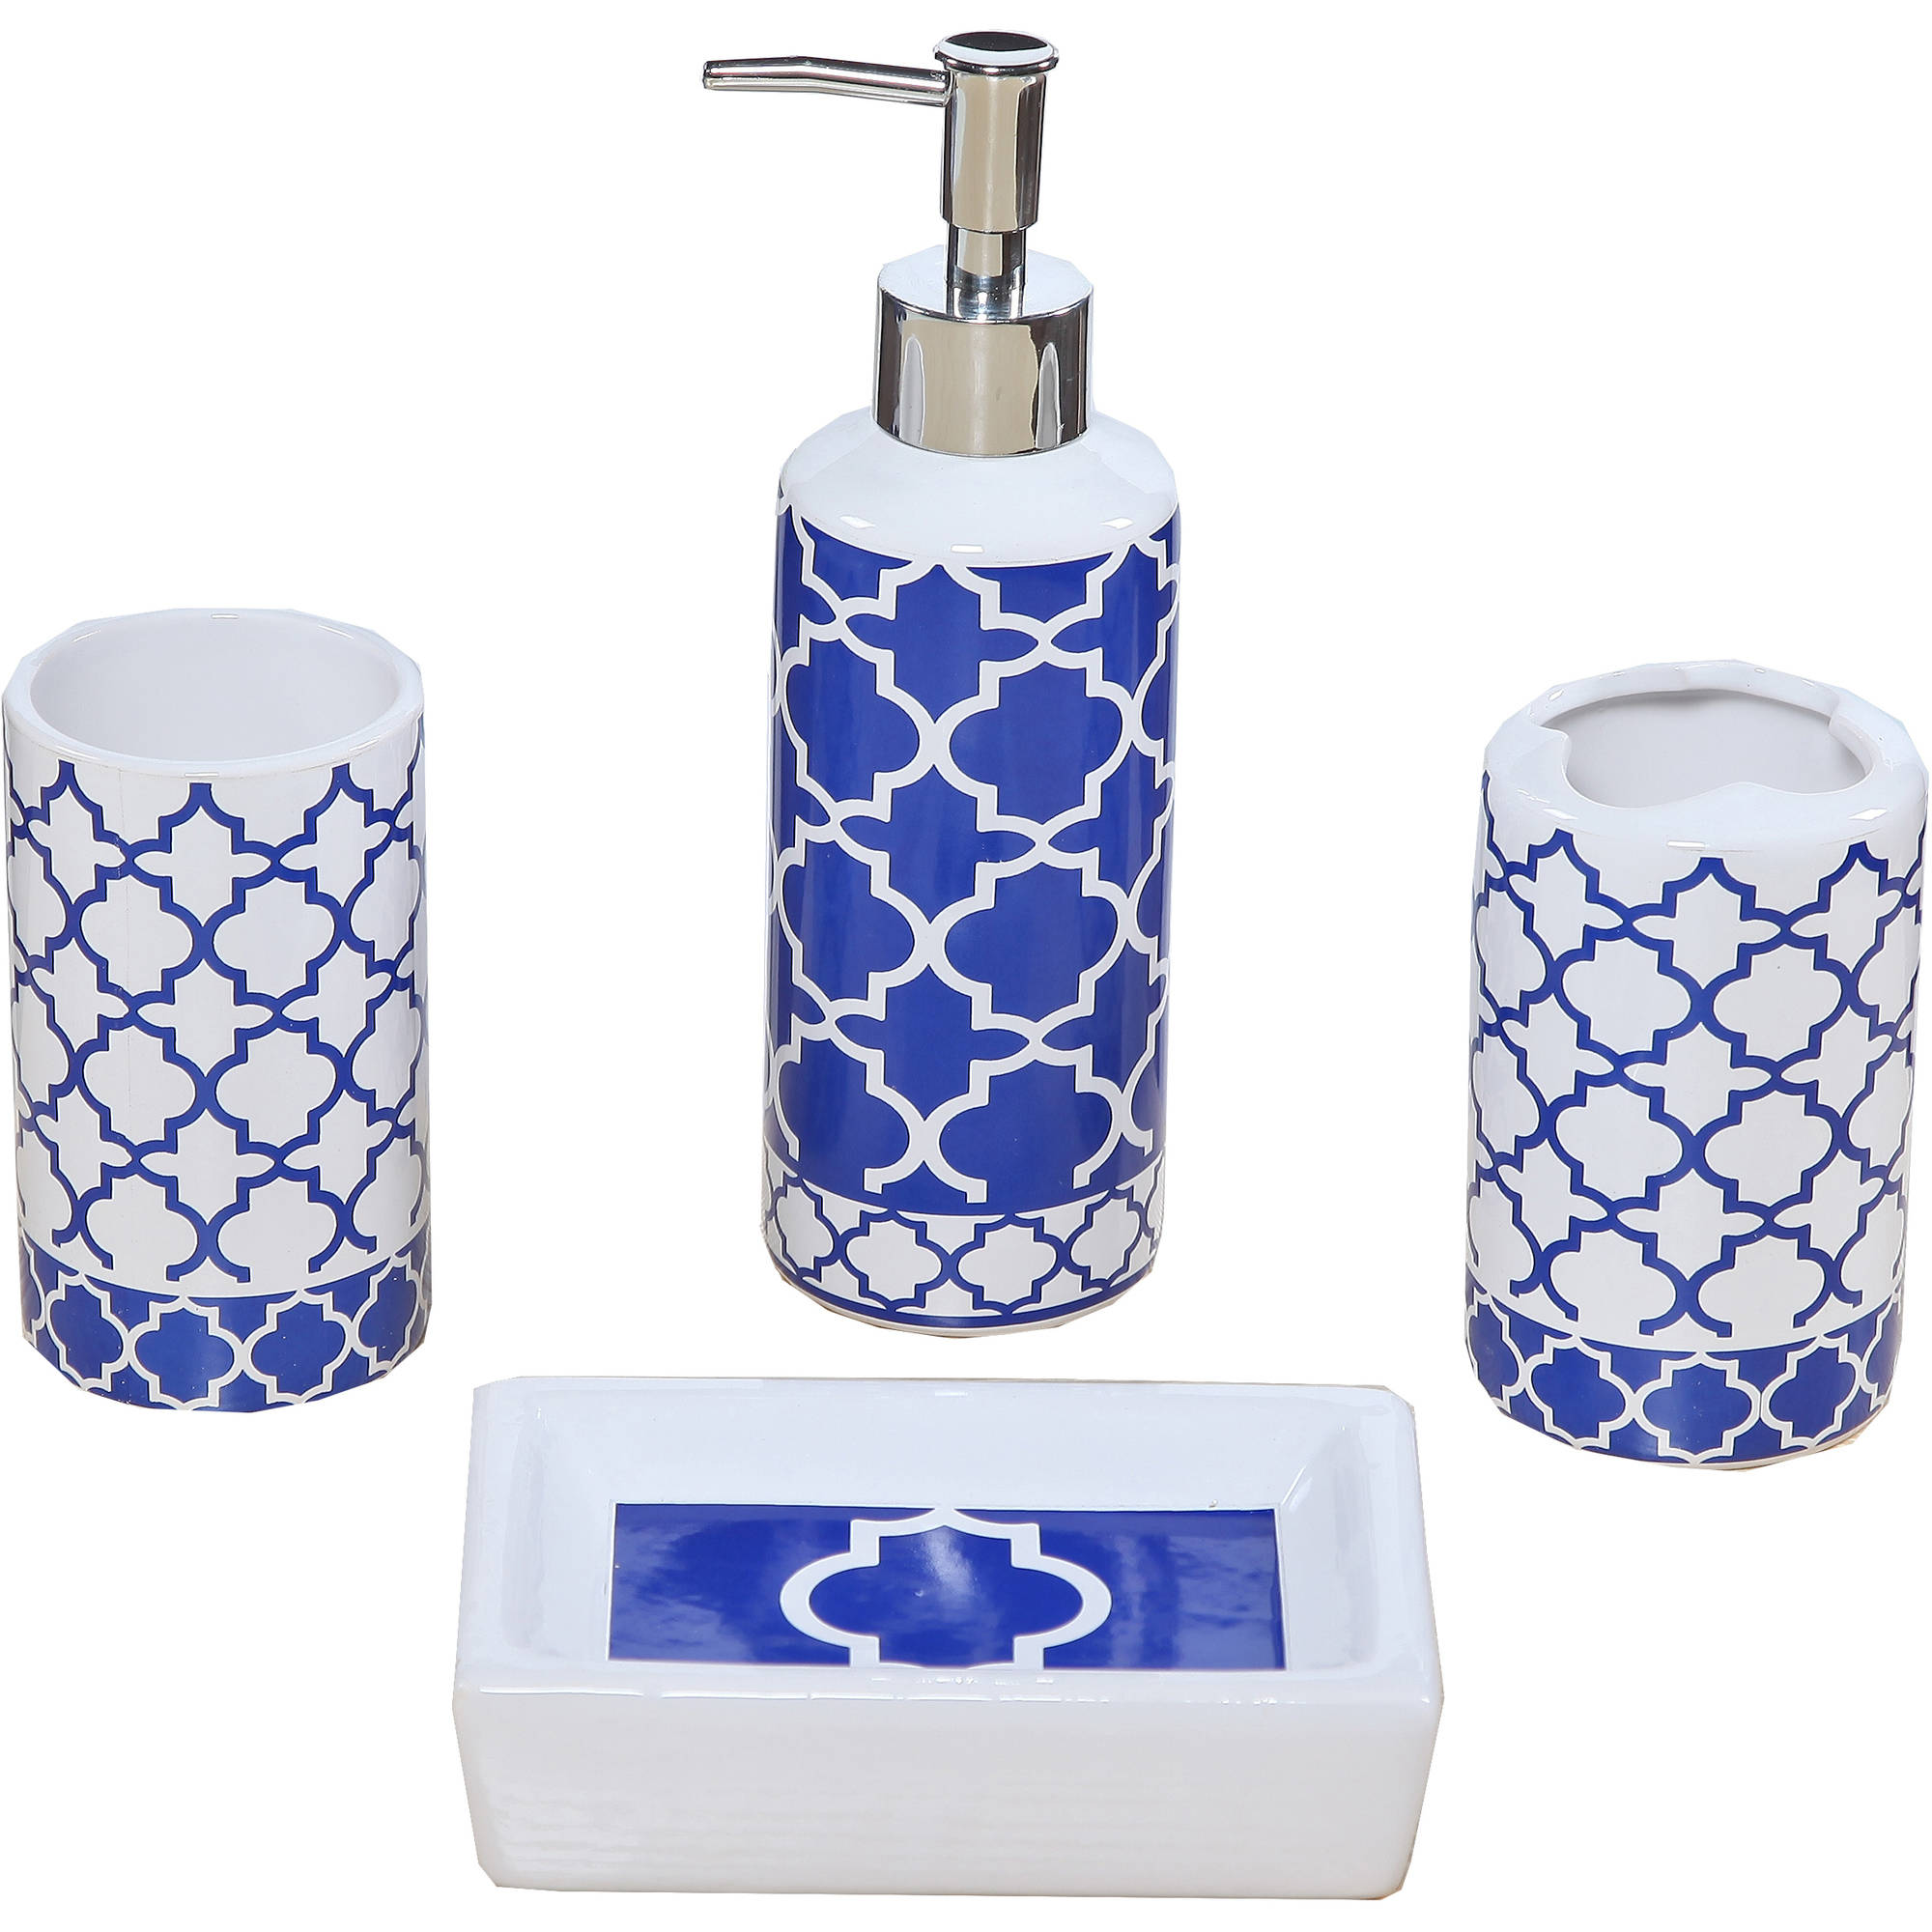 Blue and white bathroom accessories - Blue And White Bathroom Accessories 59